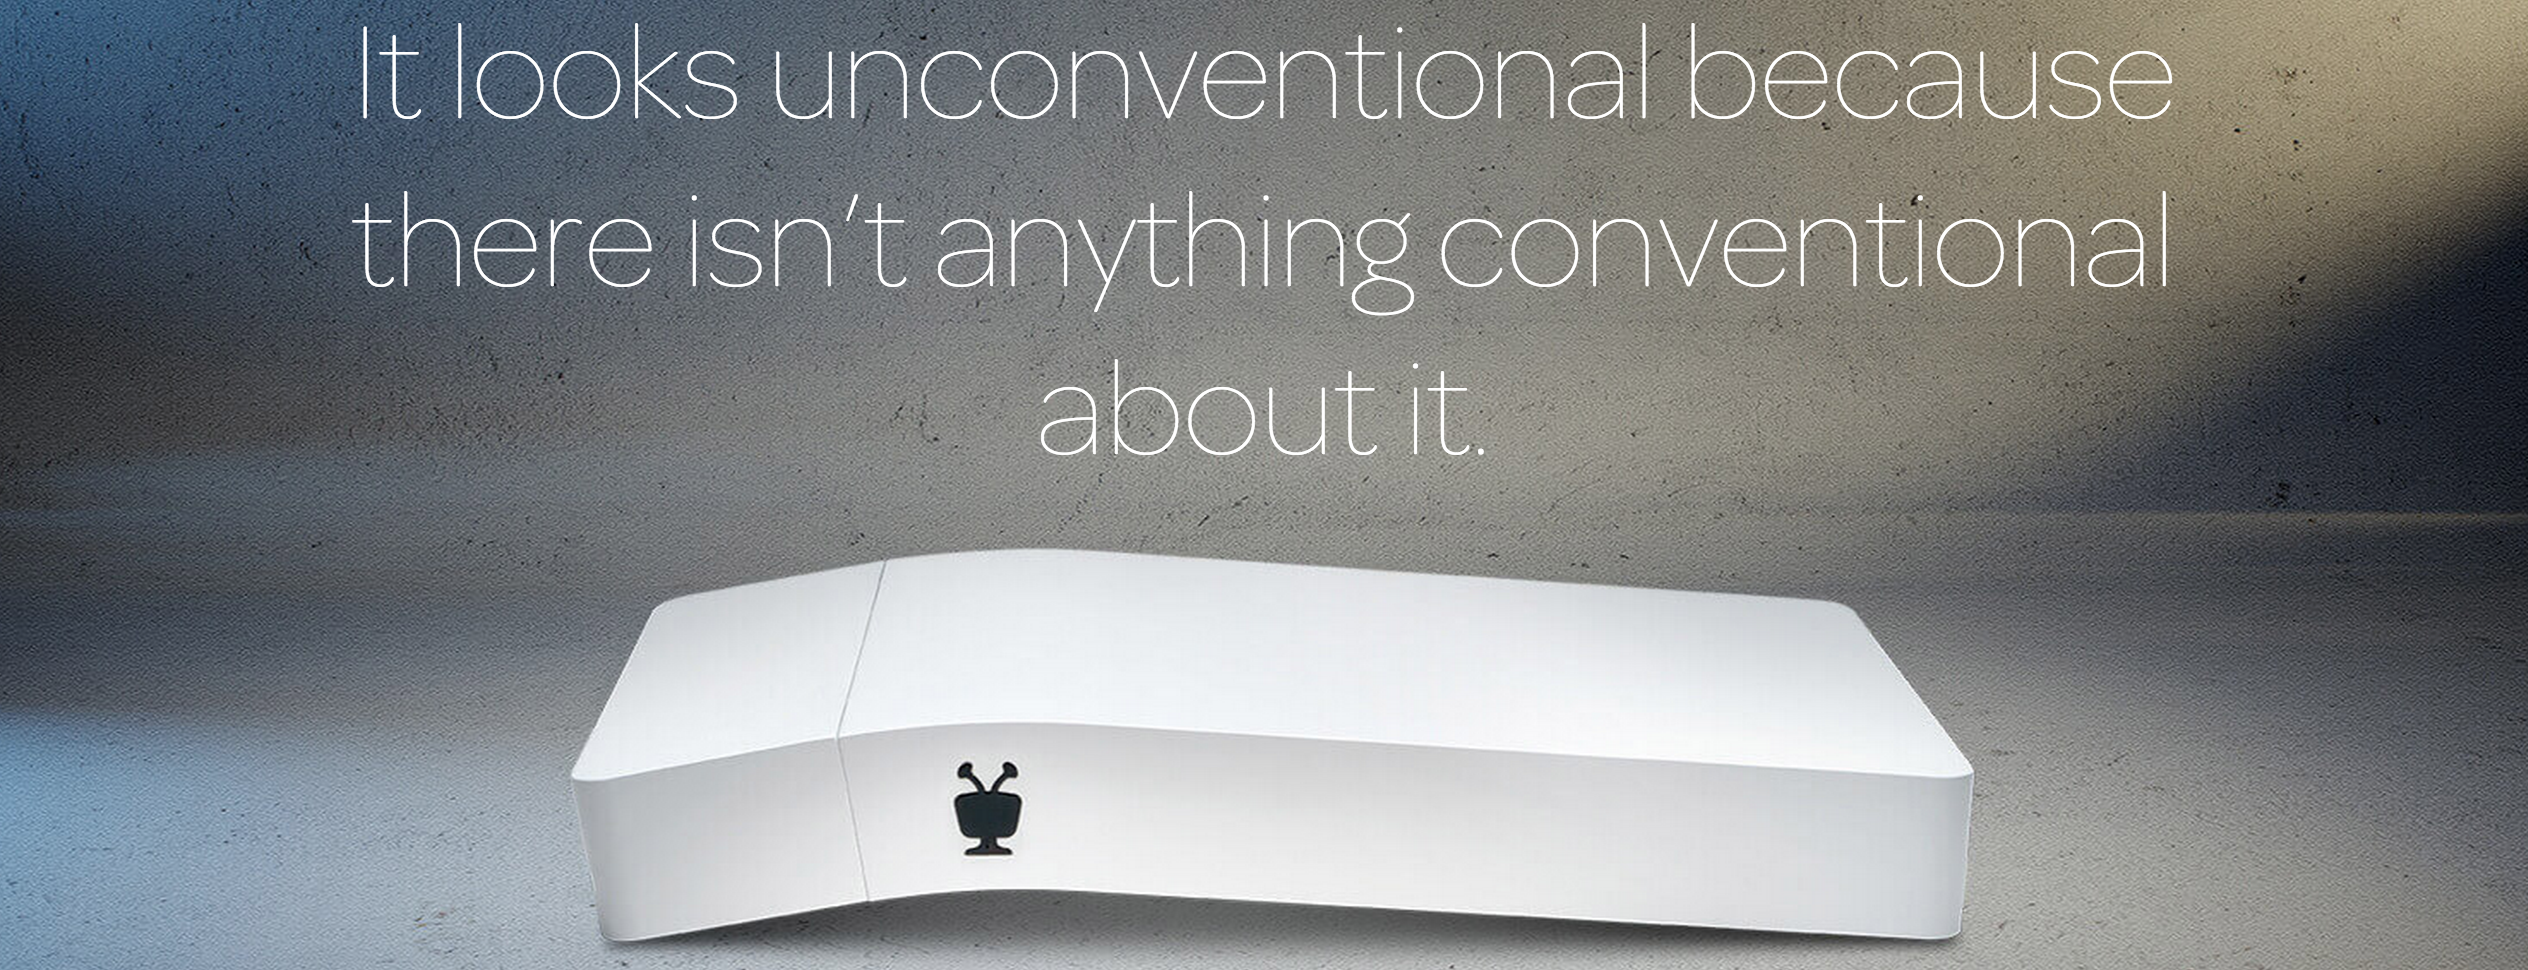 TiVo makes the DVR sexy with 4K content, AirPlay and one